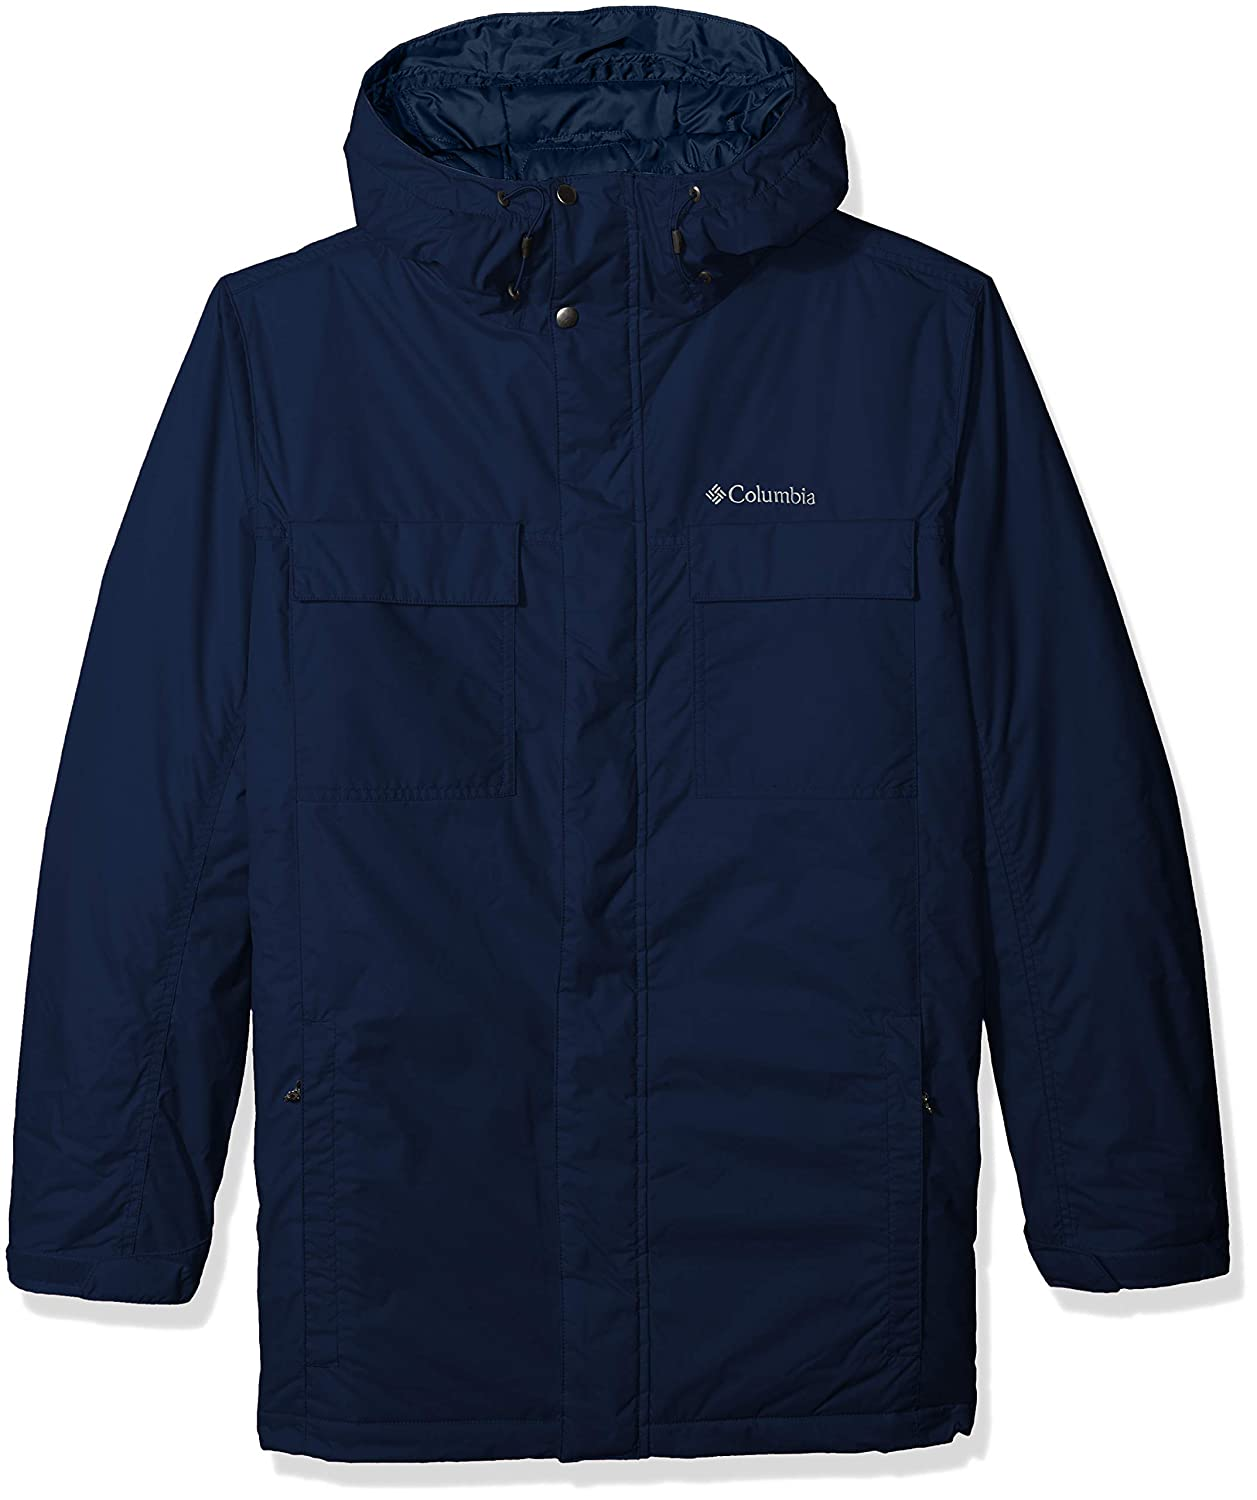 Columbia Mens Big-Tall Ten FallsTM Big & Tall Jacket